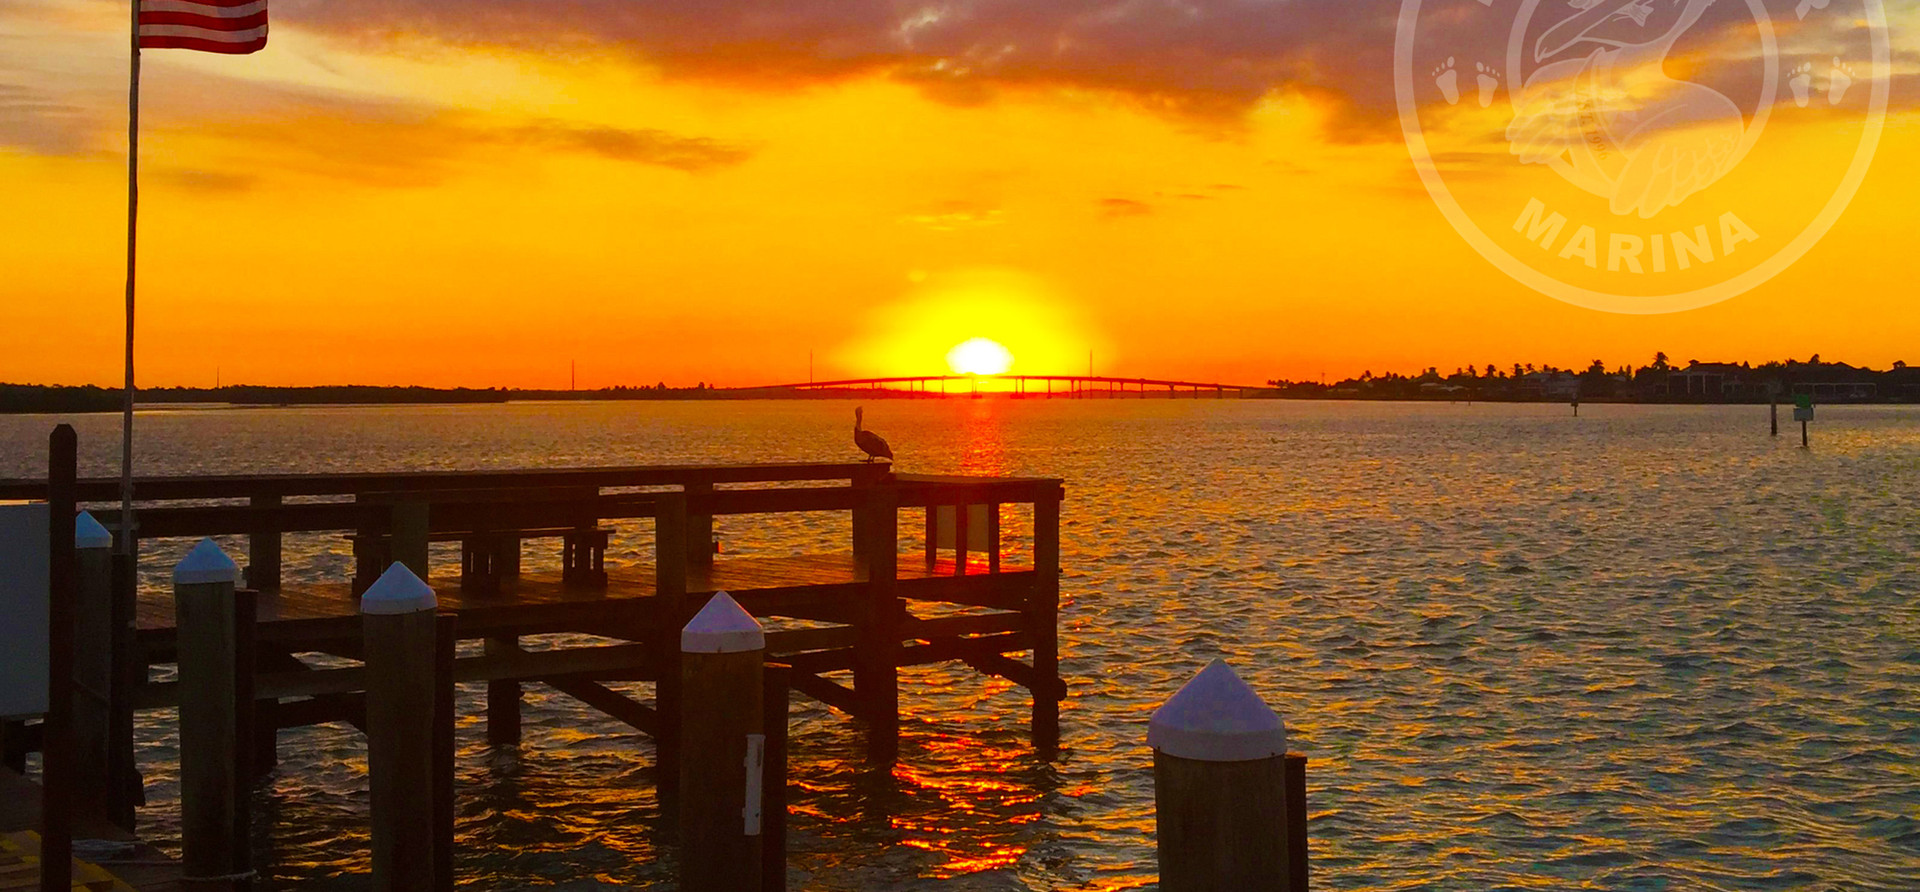 Sunsetting on Pelican over Marco Bridge - Taken from Pelican Pier